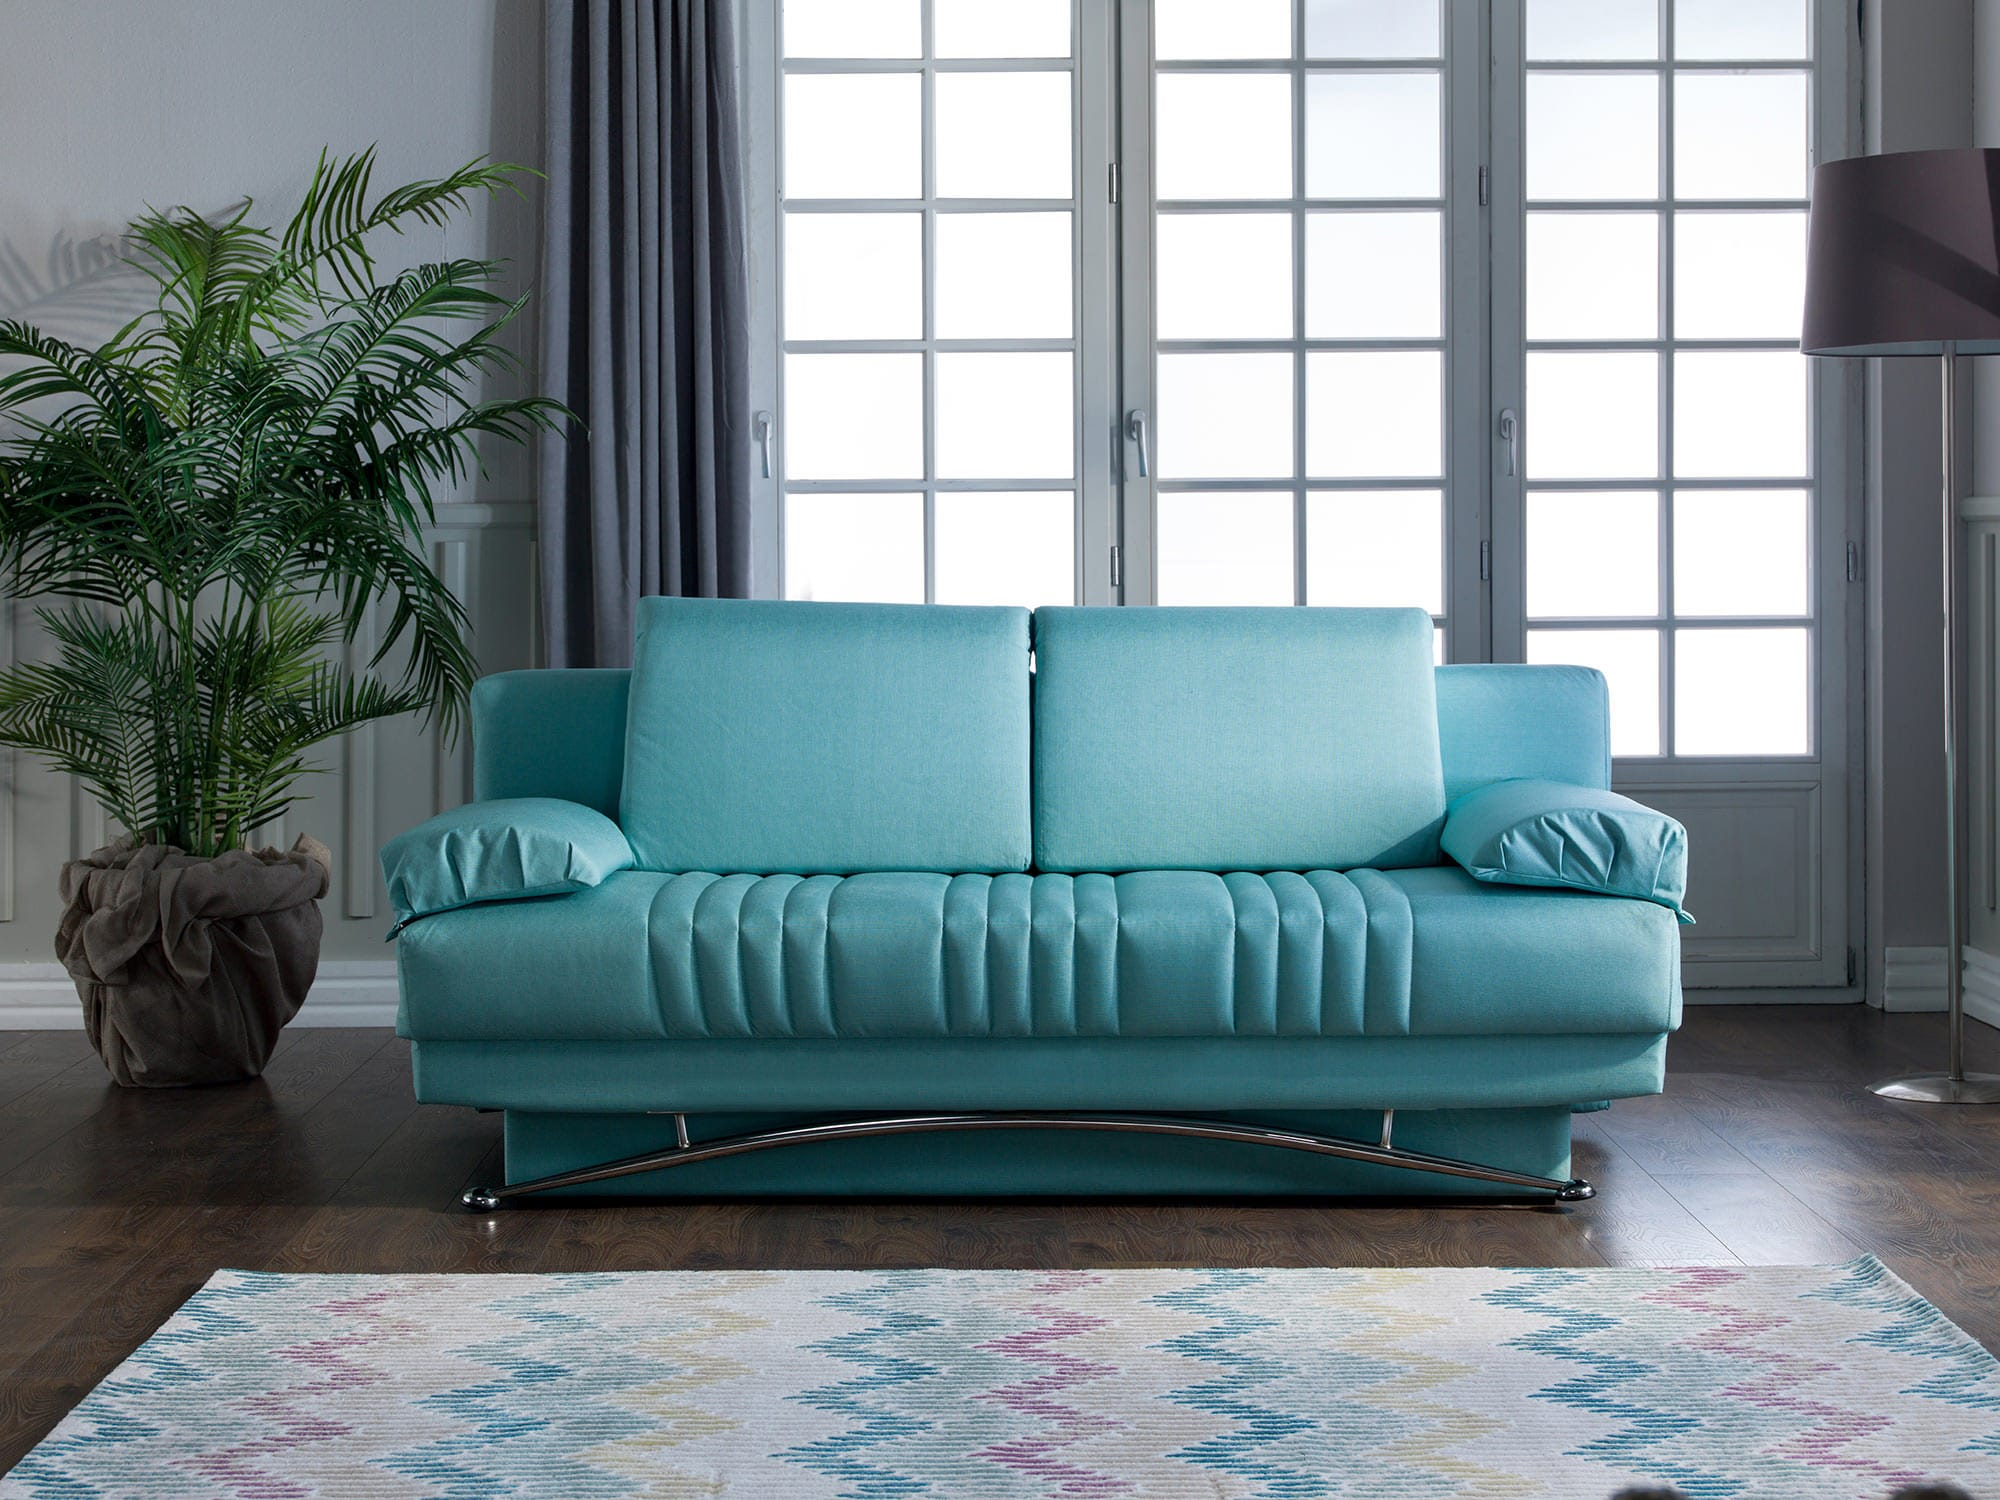 Remarkable Fantasy Coton Seafoam Green Convertible Sofa Bed By Istikbal Furniture Interior Design Ideas Ghosoteloinfo